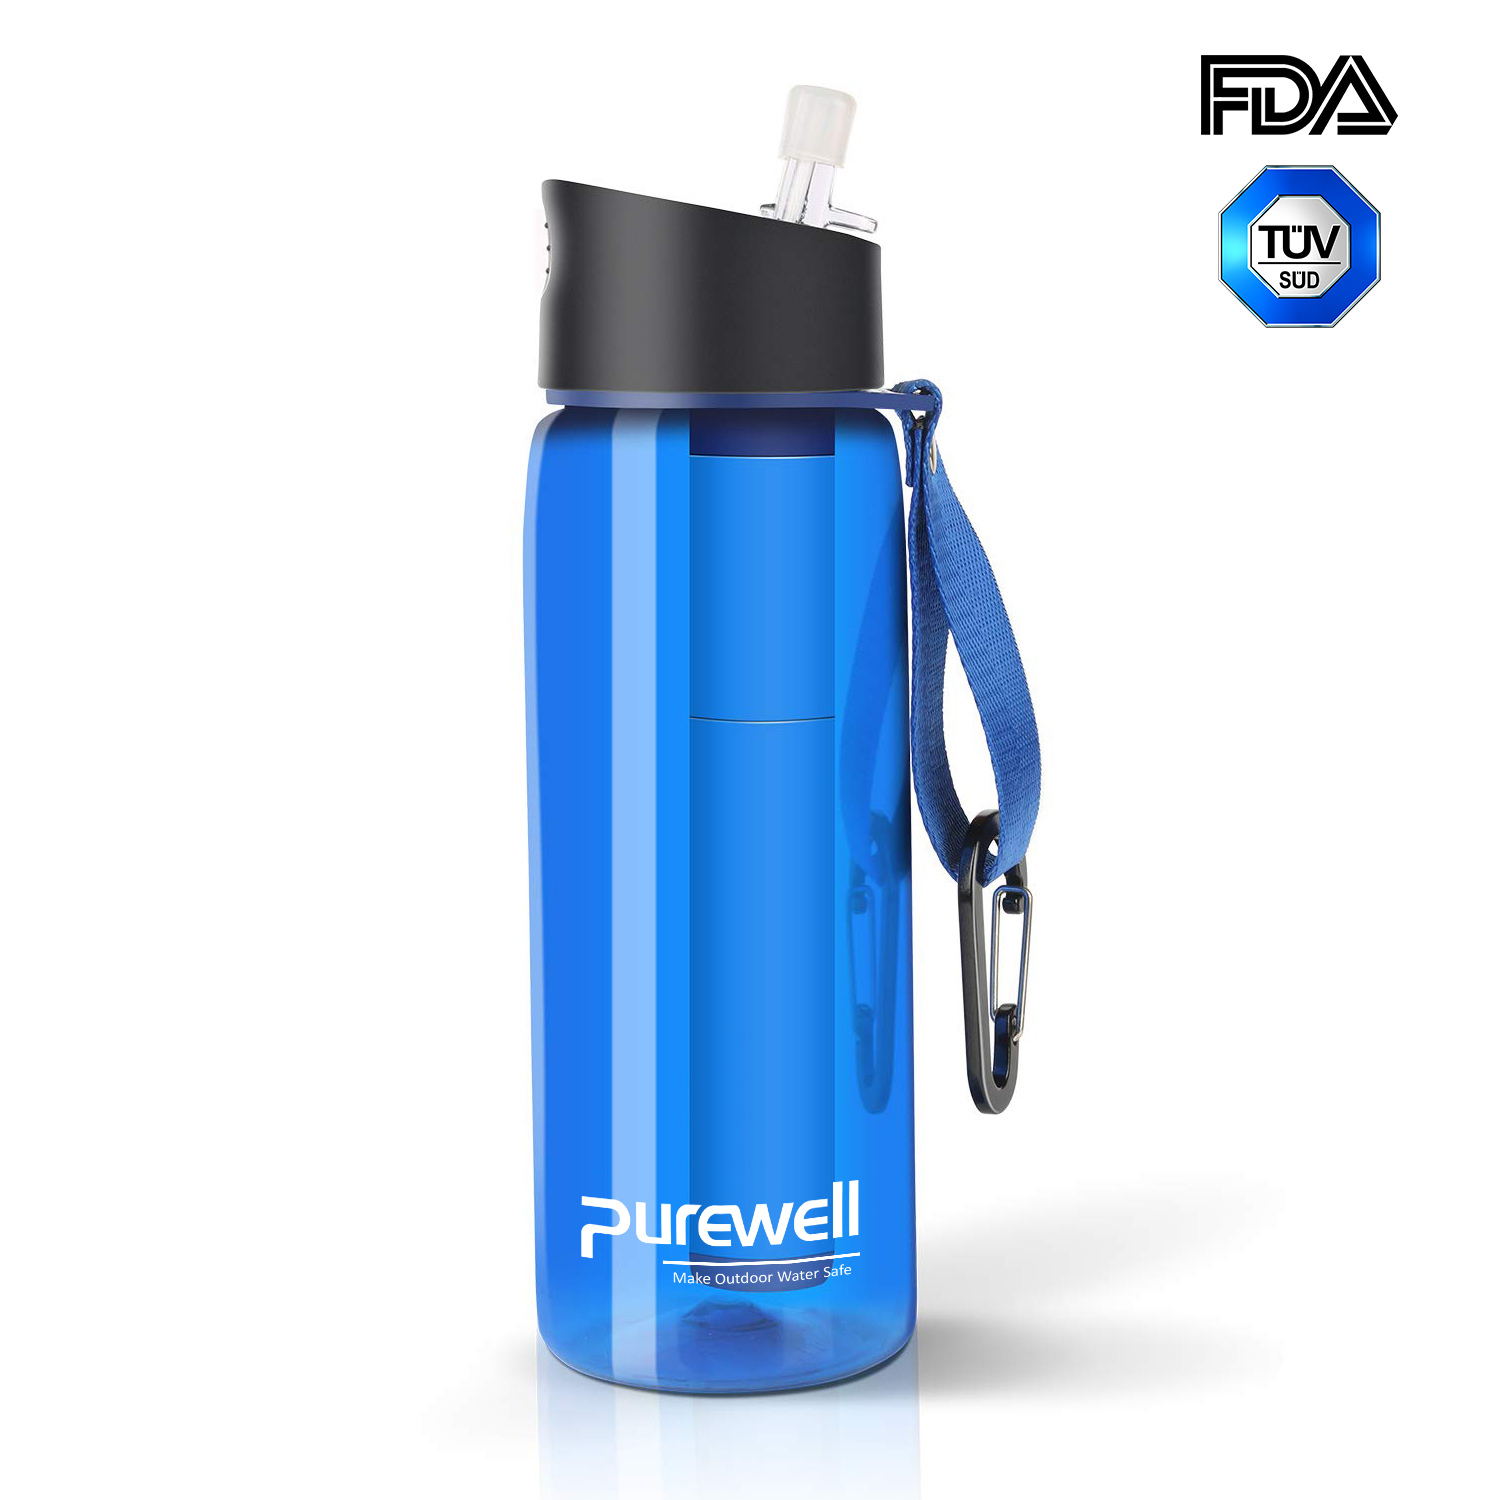 Purewell Array image150